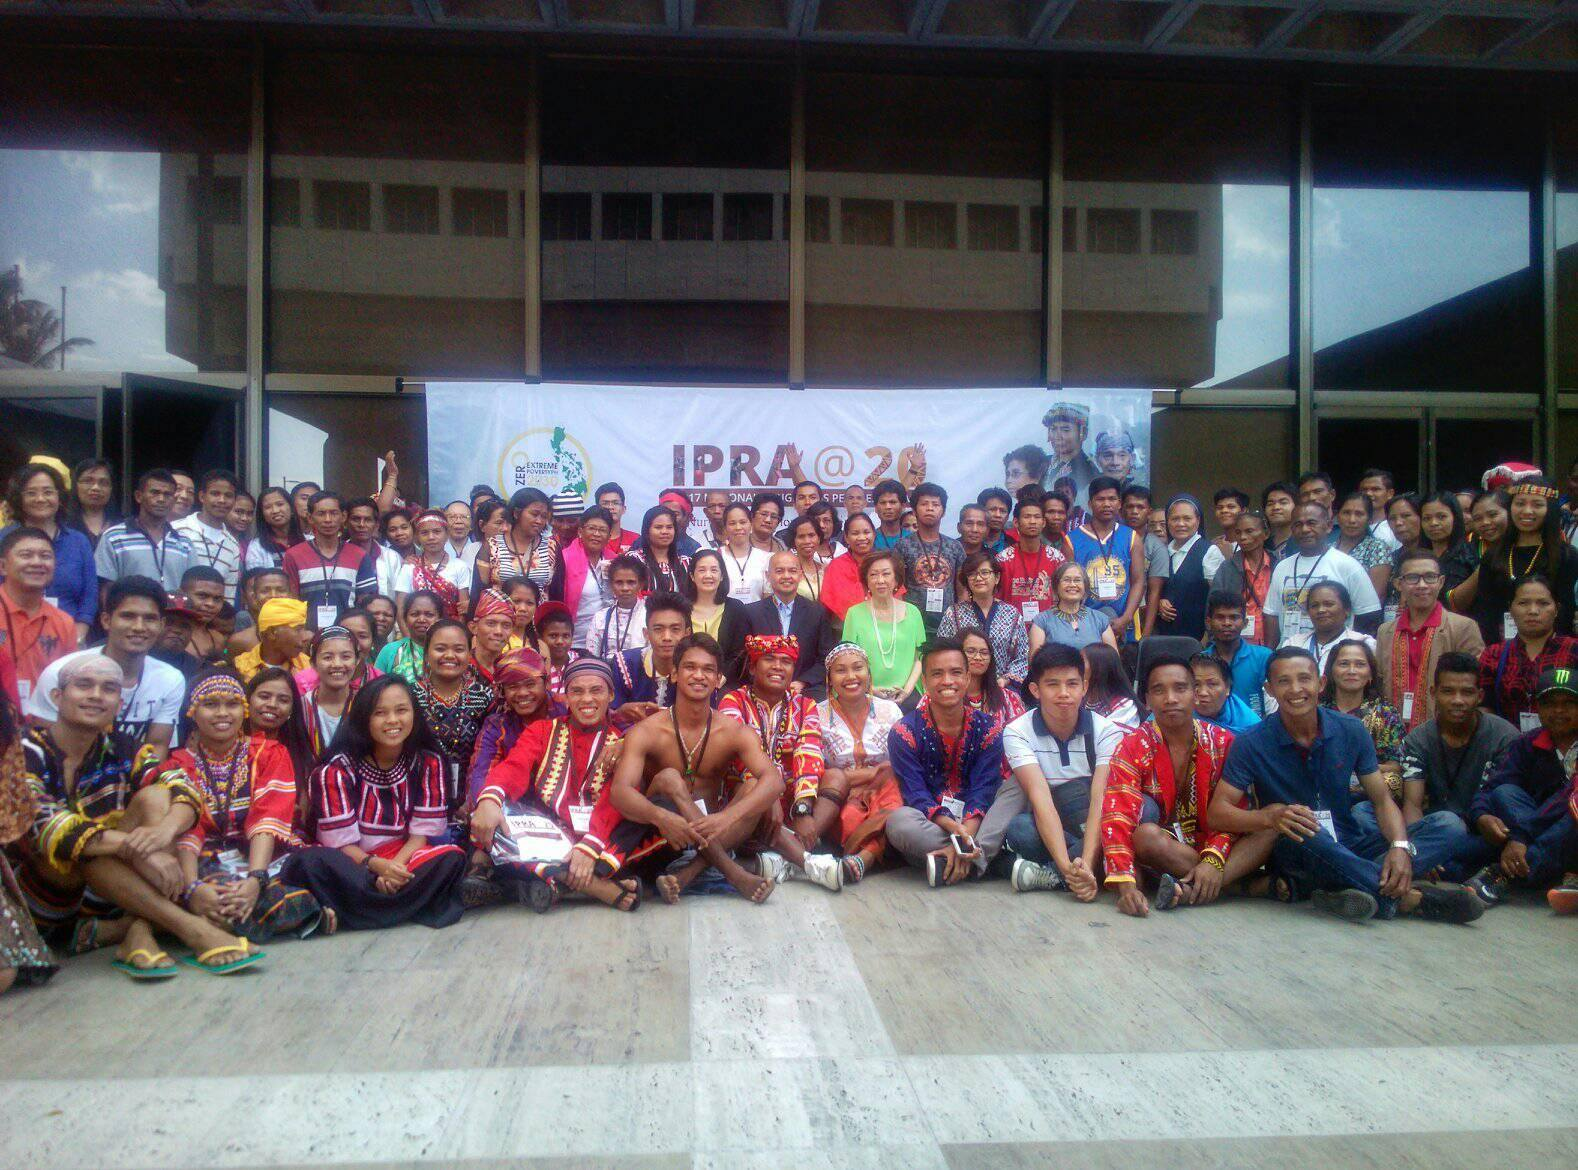 IP RIGHTS. Representatives from different tribes from all over the country gather at the Ramon Magsaysay Center for the 2017 Indigenous Peoples Summit. Photo by Bong Santisteban/Rappler